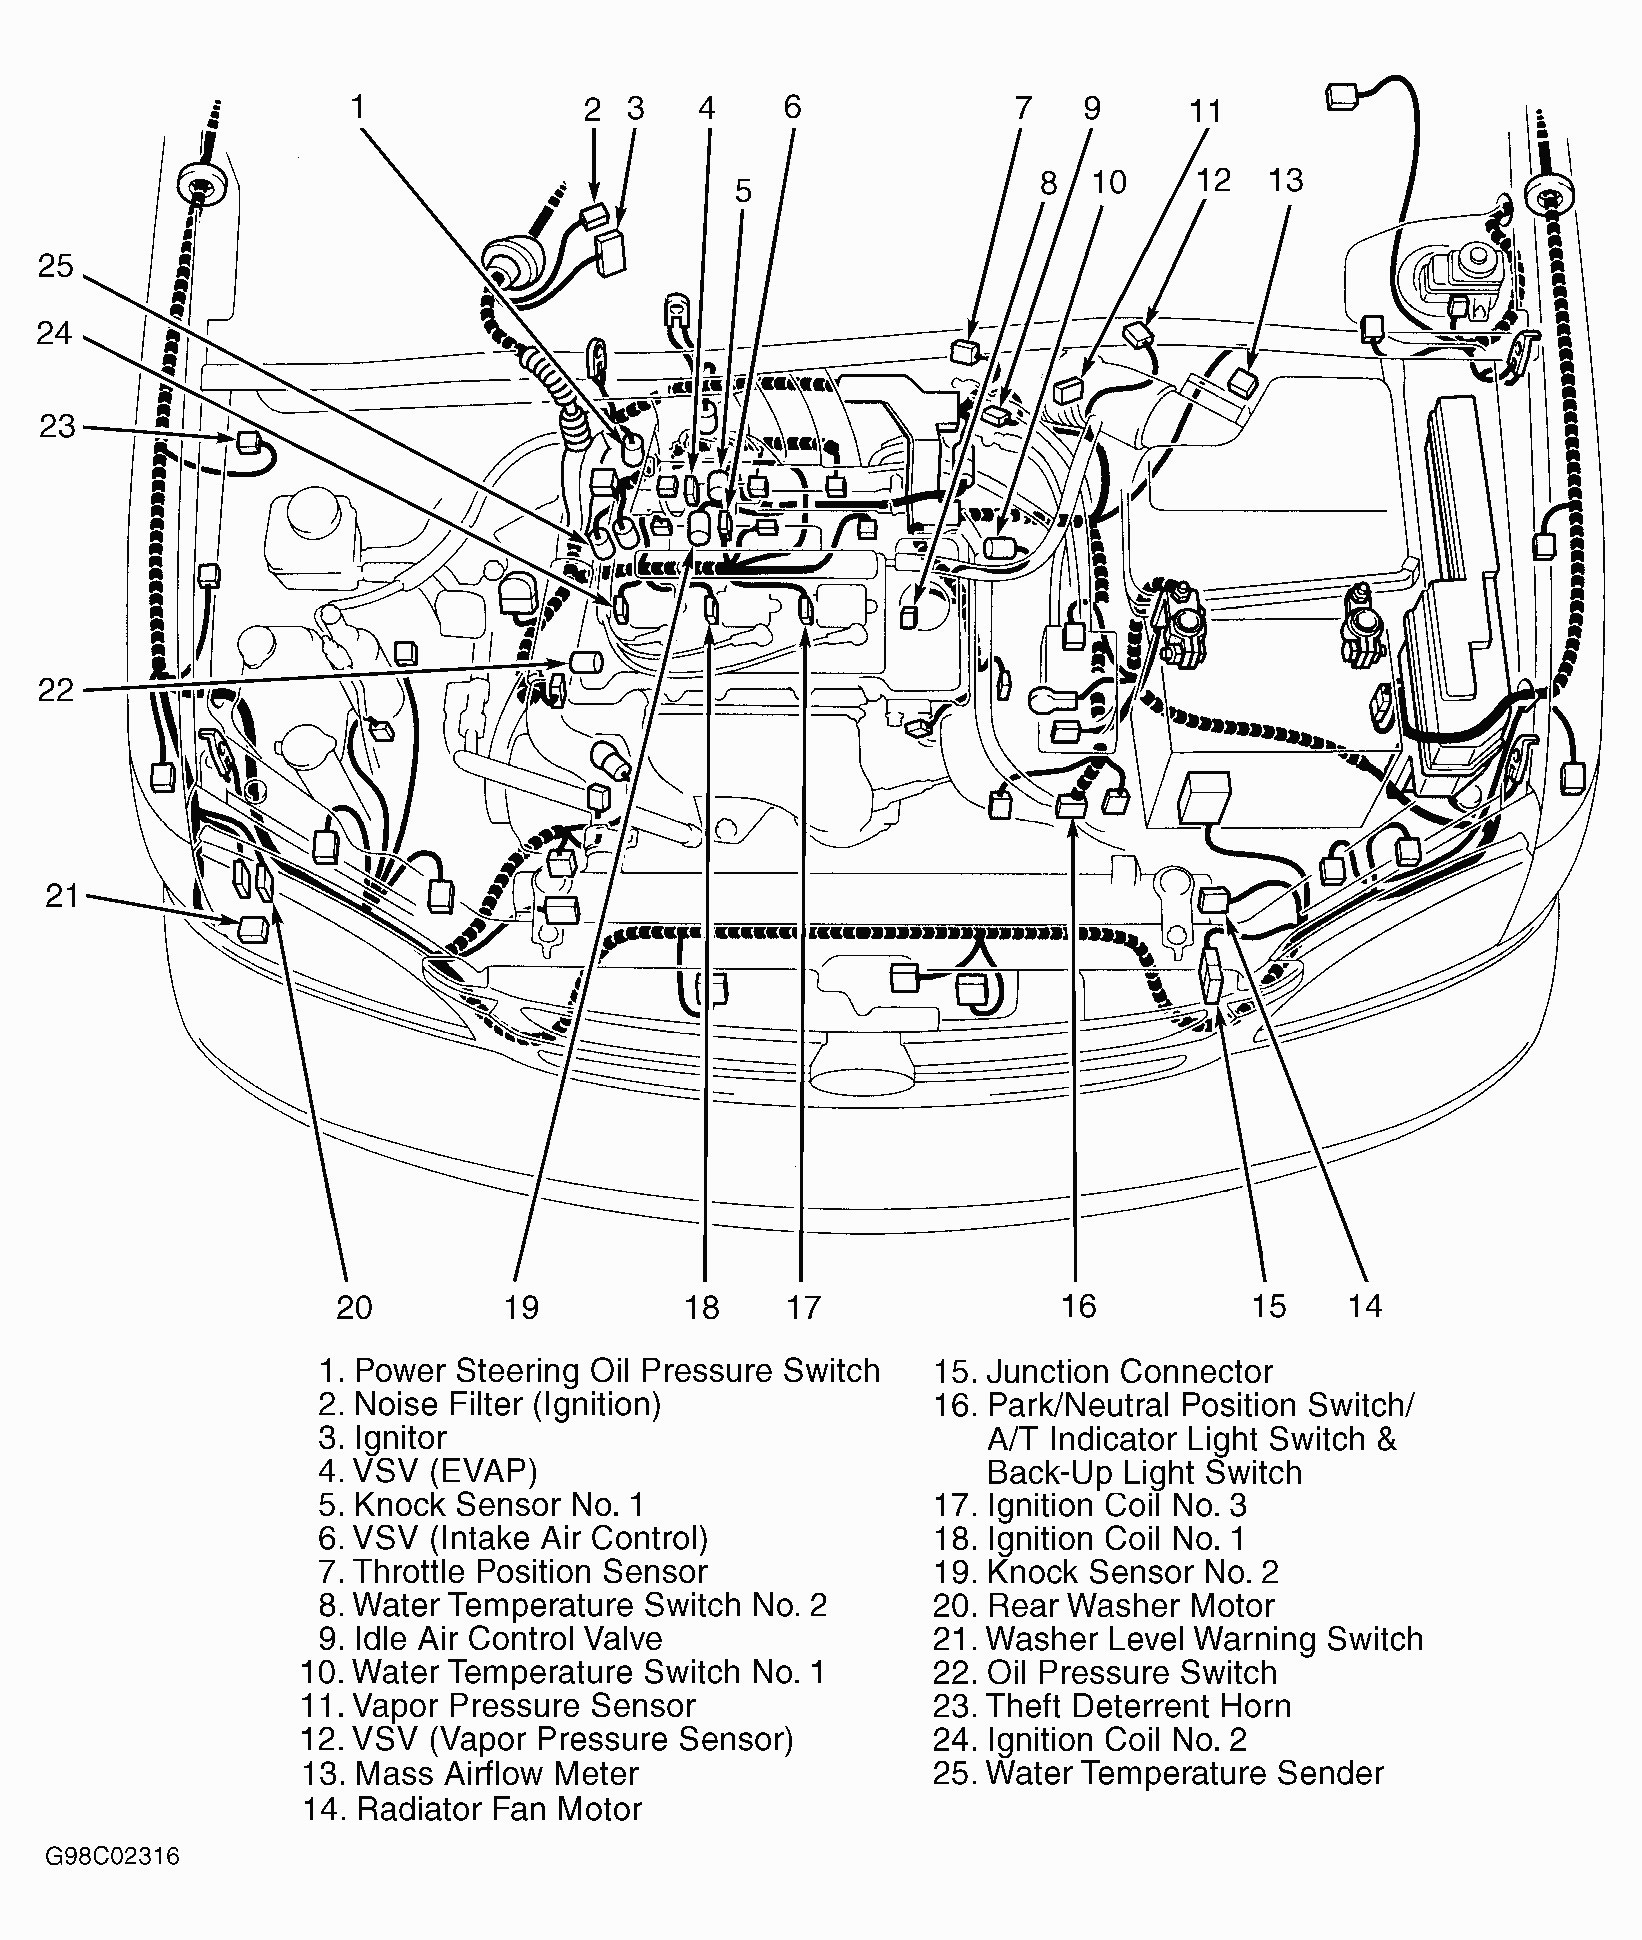 1994 Toyota Corolla 1 6 Engine Diagram - Electrical Work Wiring ...